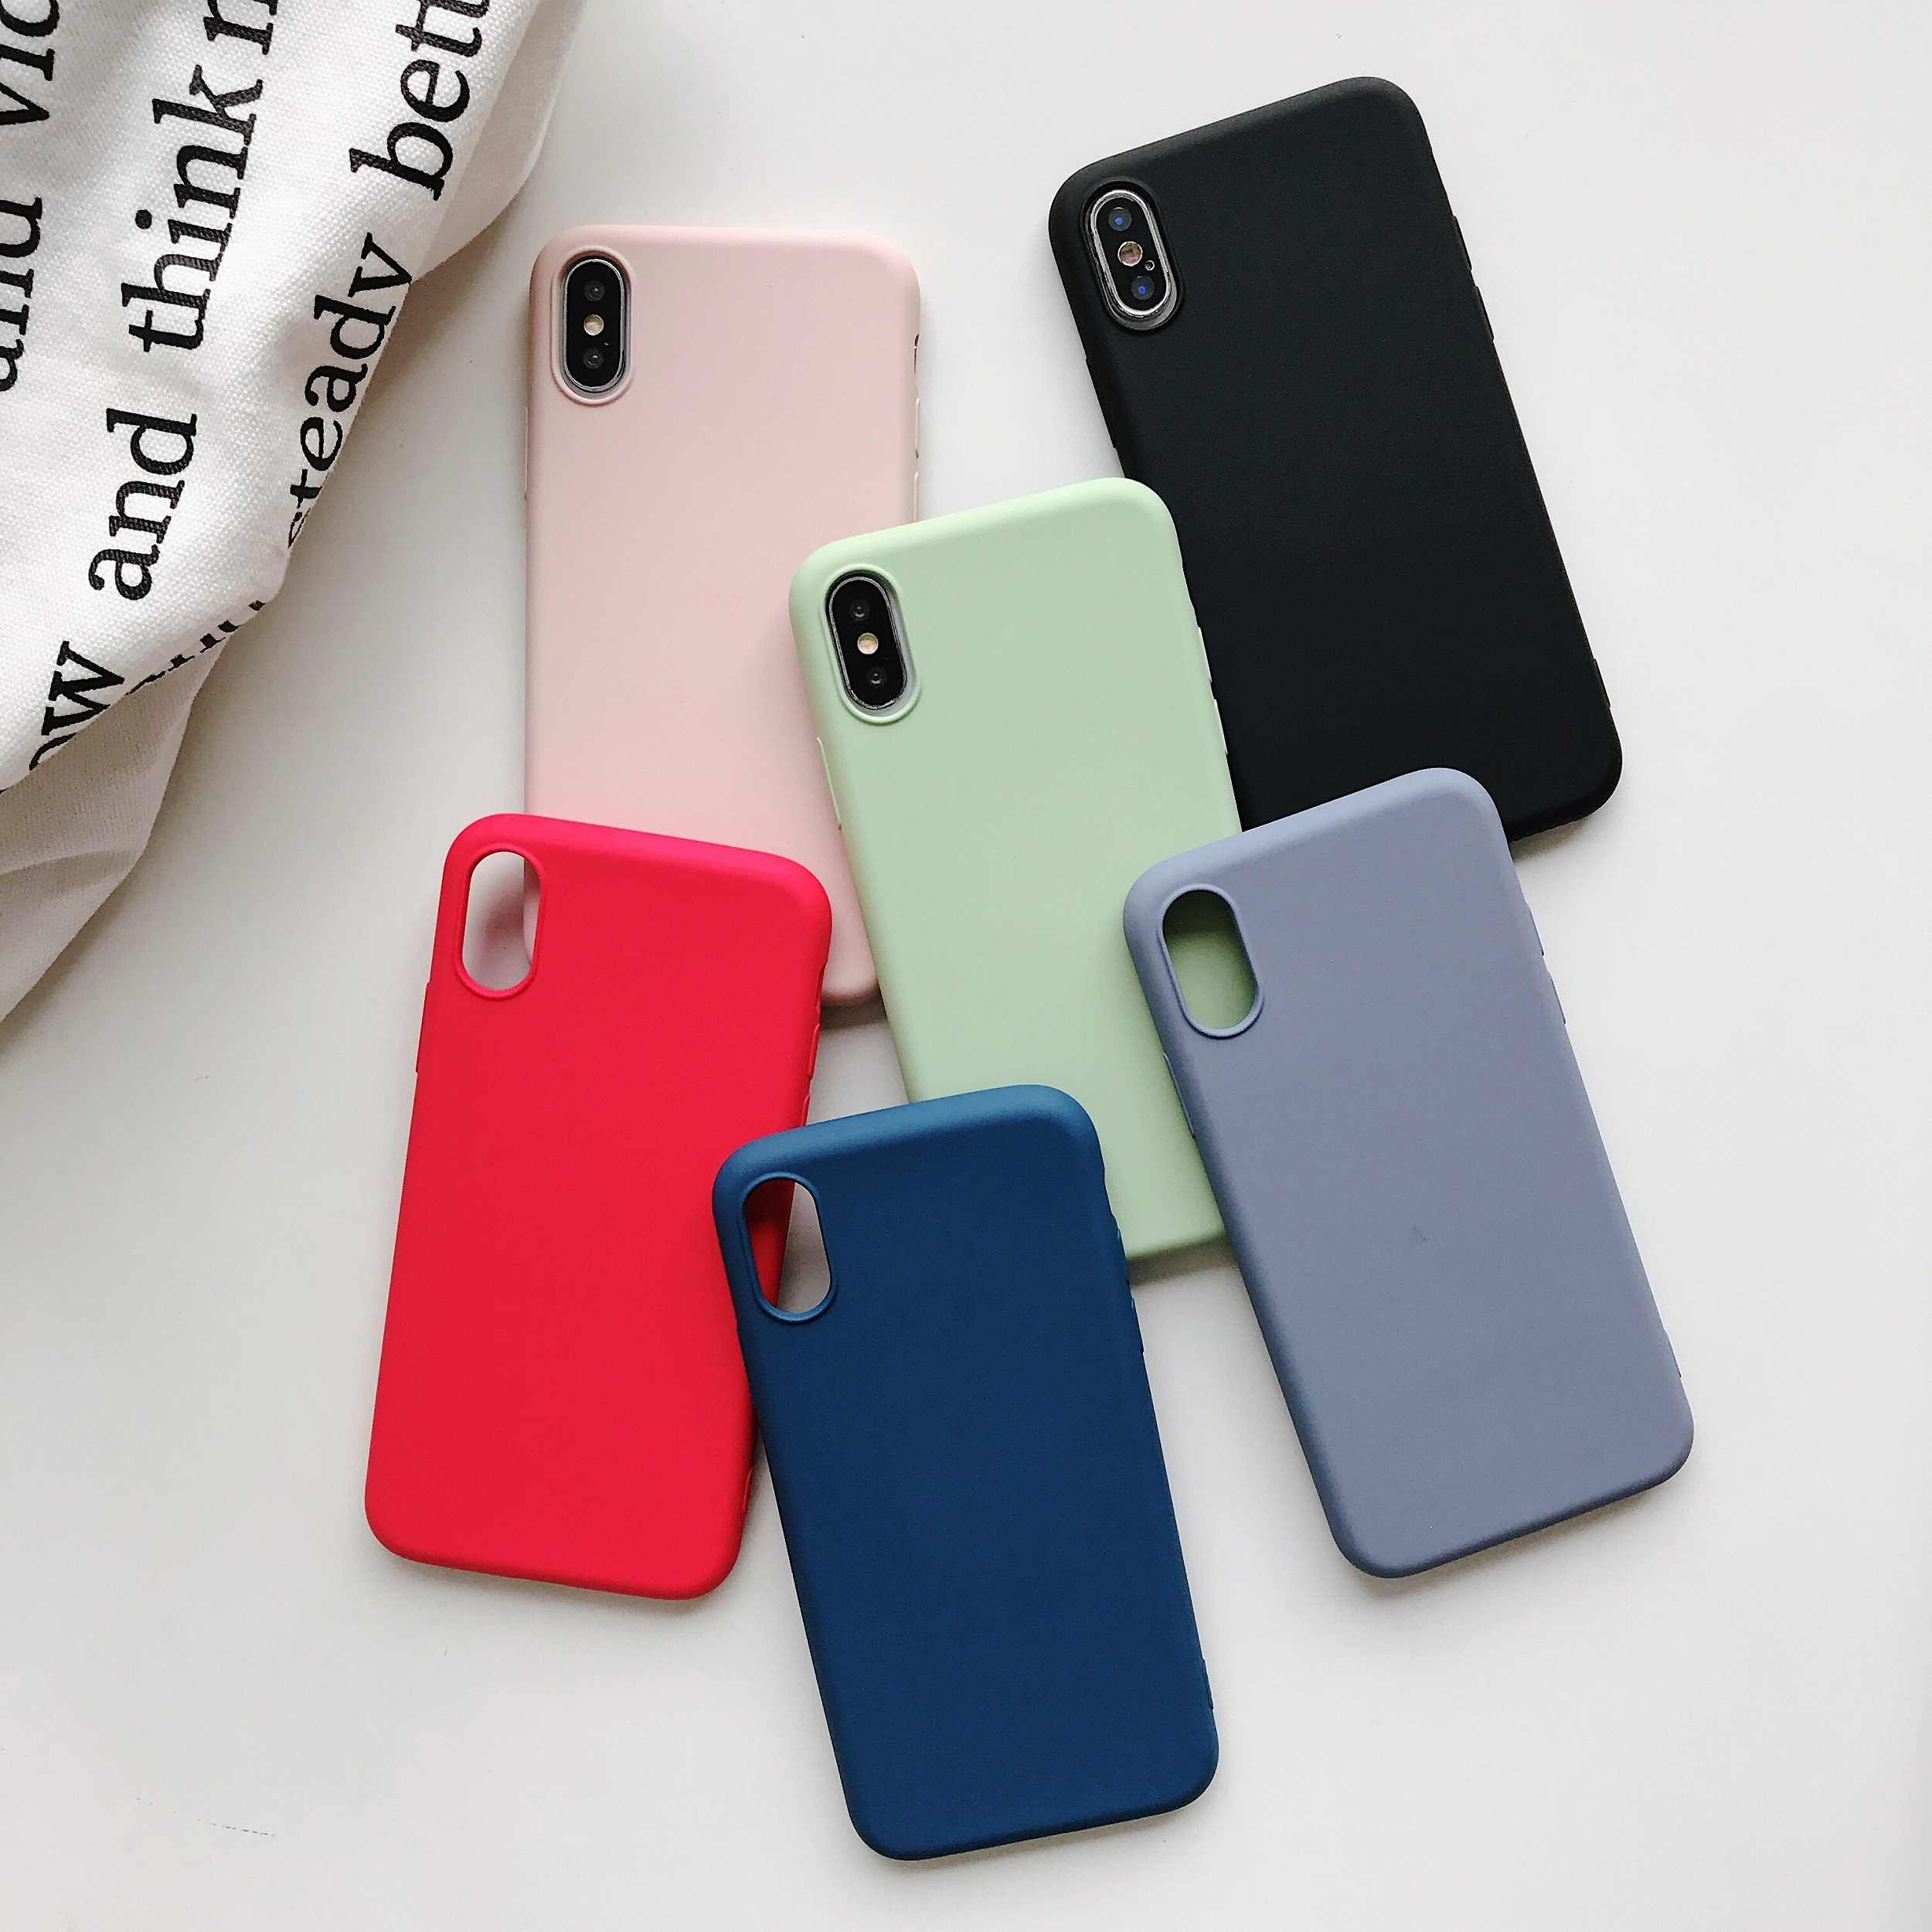 Ultra Thin Ultra Light Plain Silicone Phone Case For Oppo A3 A3S A5 A7 A7X A9 A9X F9 Pro F11 Realme X 3 Soft TPU Cover Shell